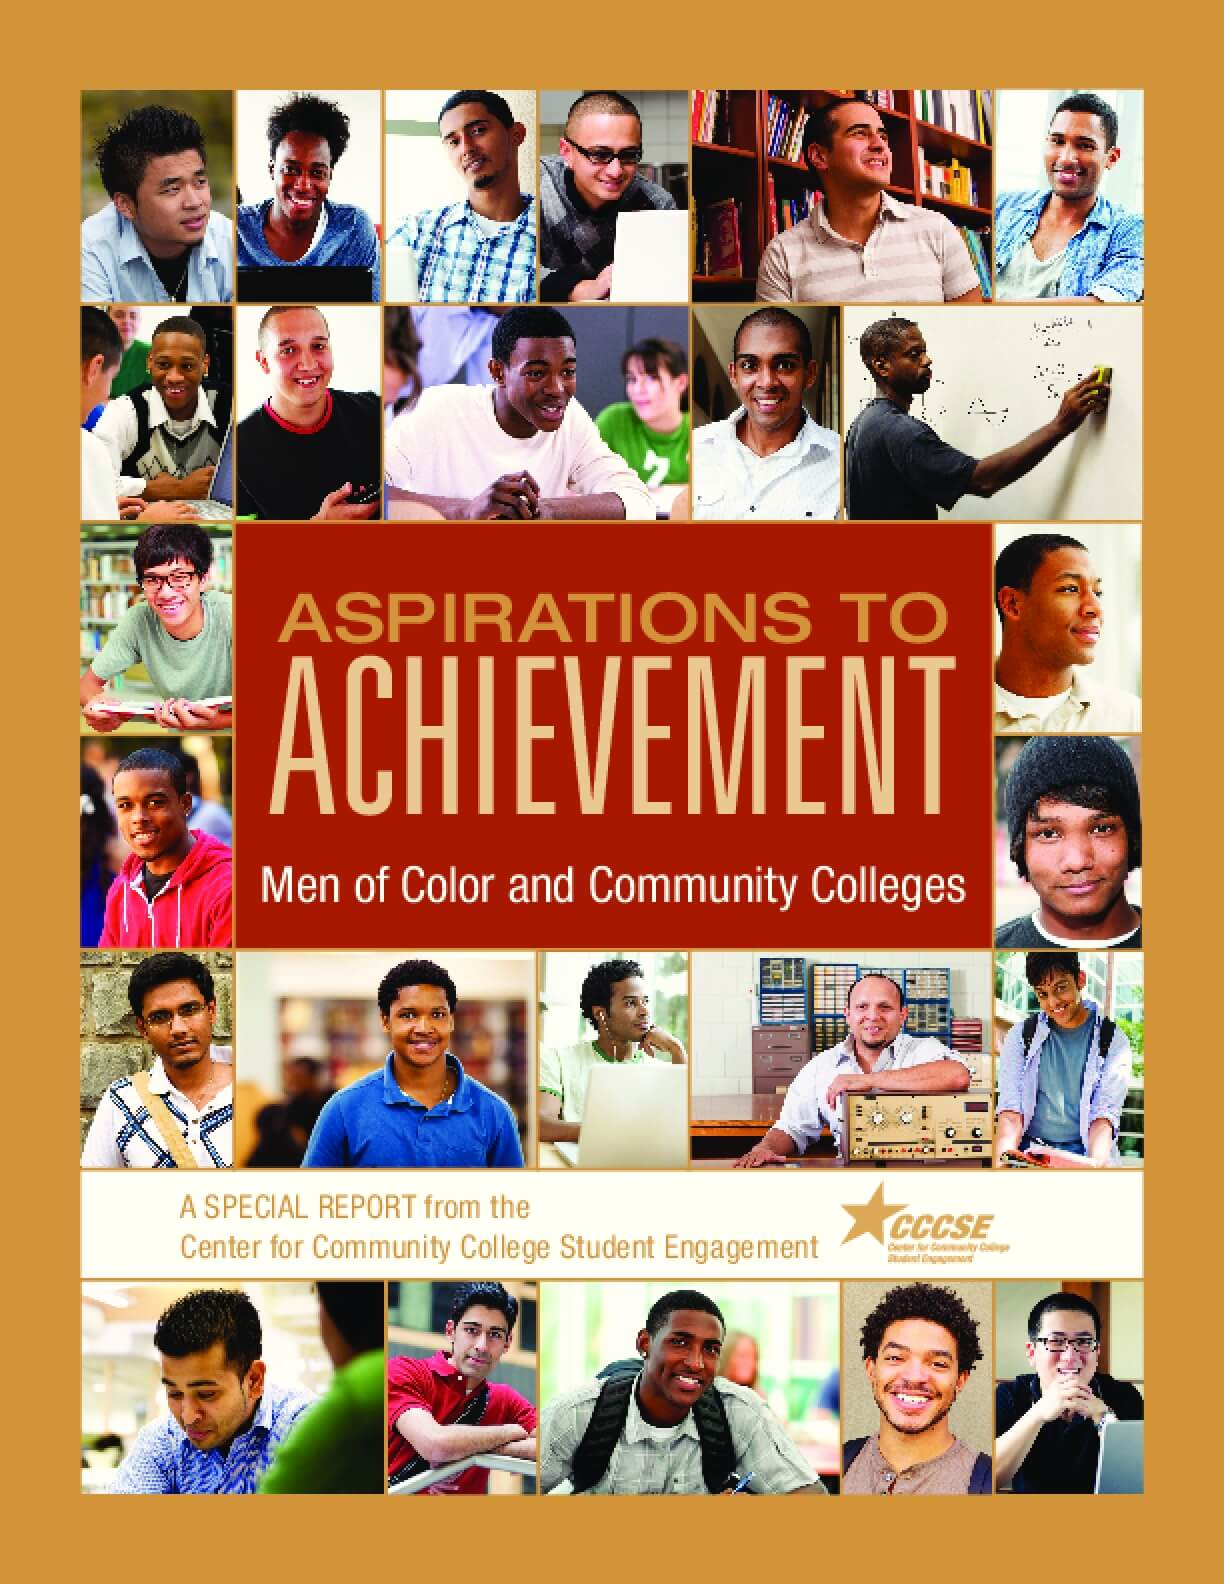 Aspirations to Achievement: Men of Color and Community Colleges